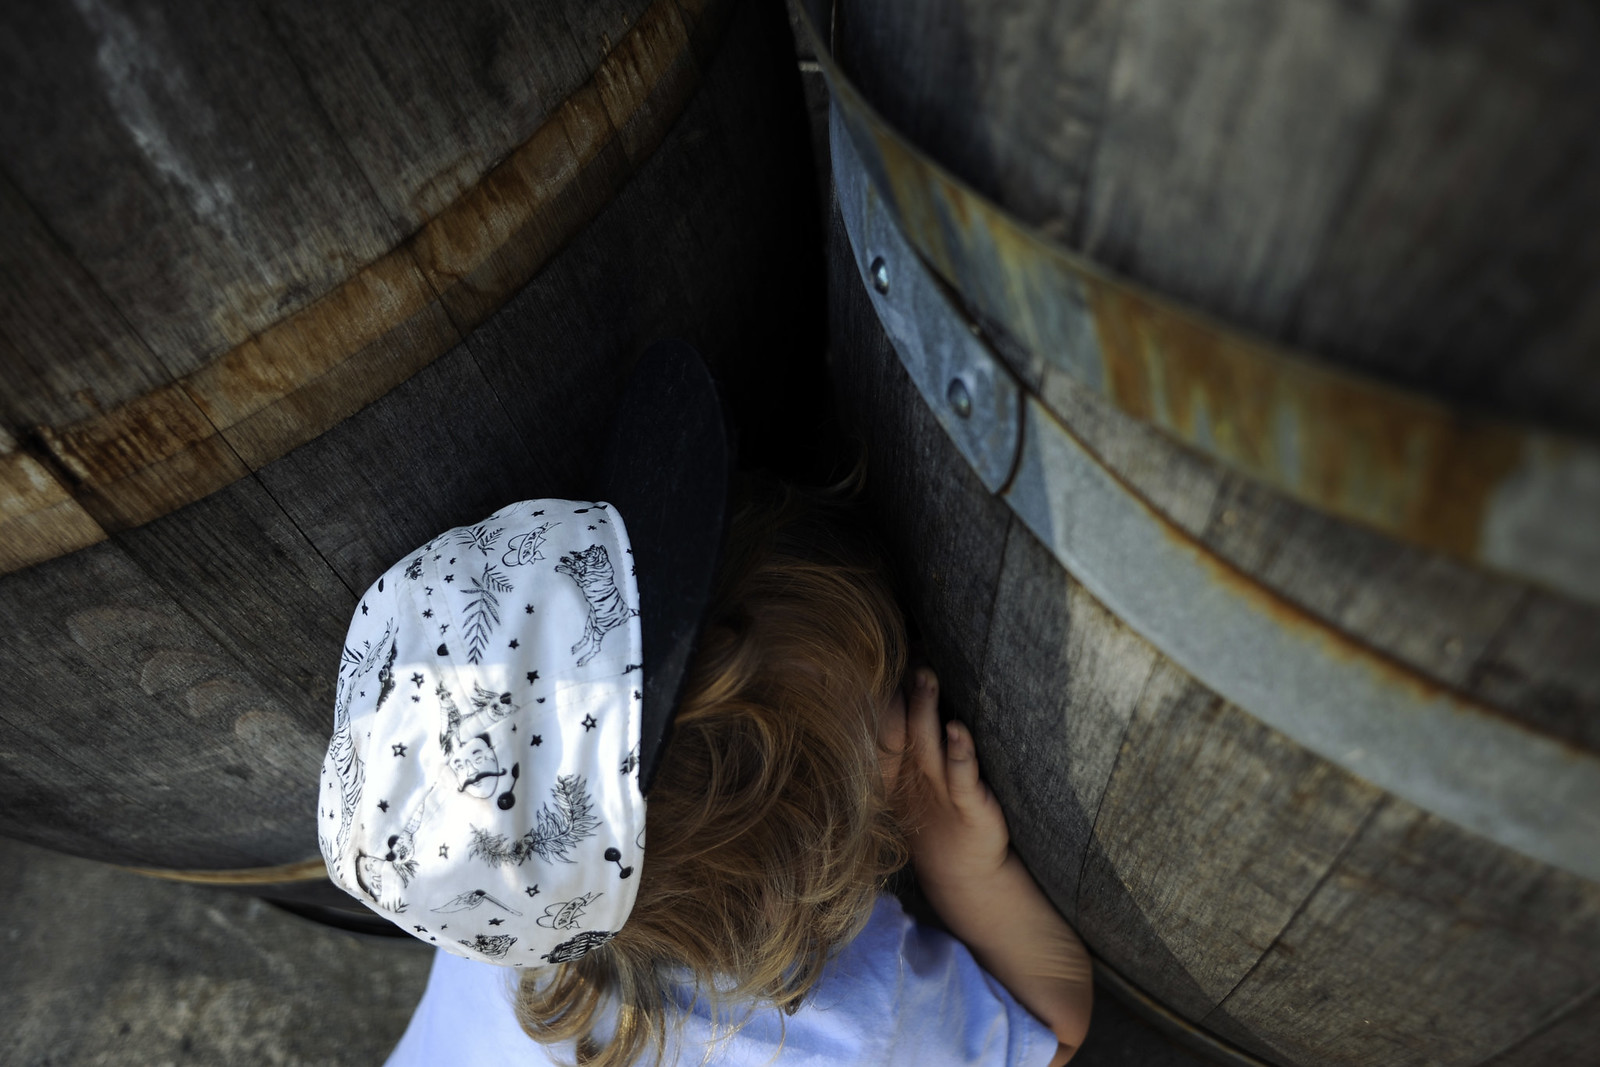 Peeking in the barrel hole